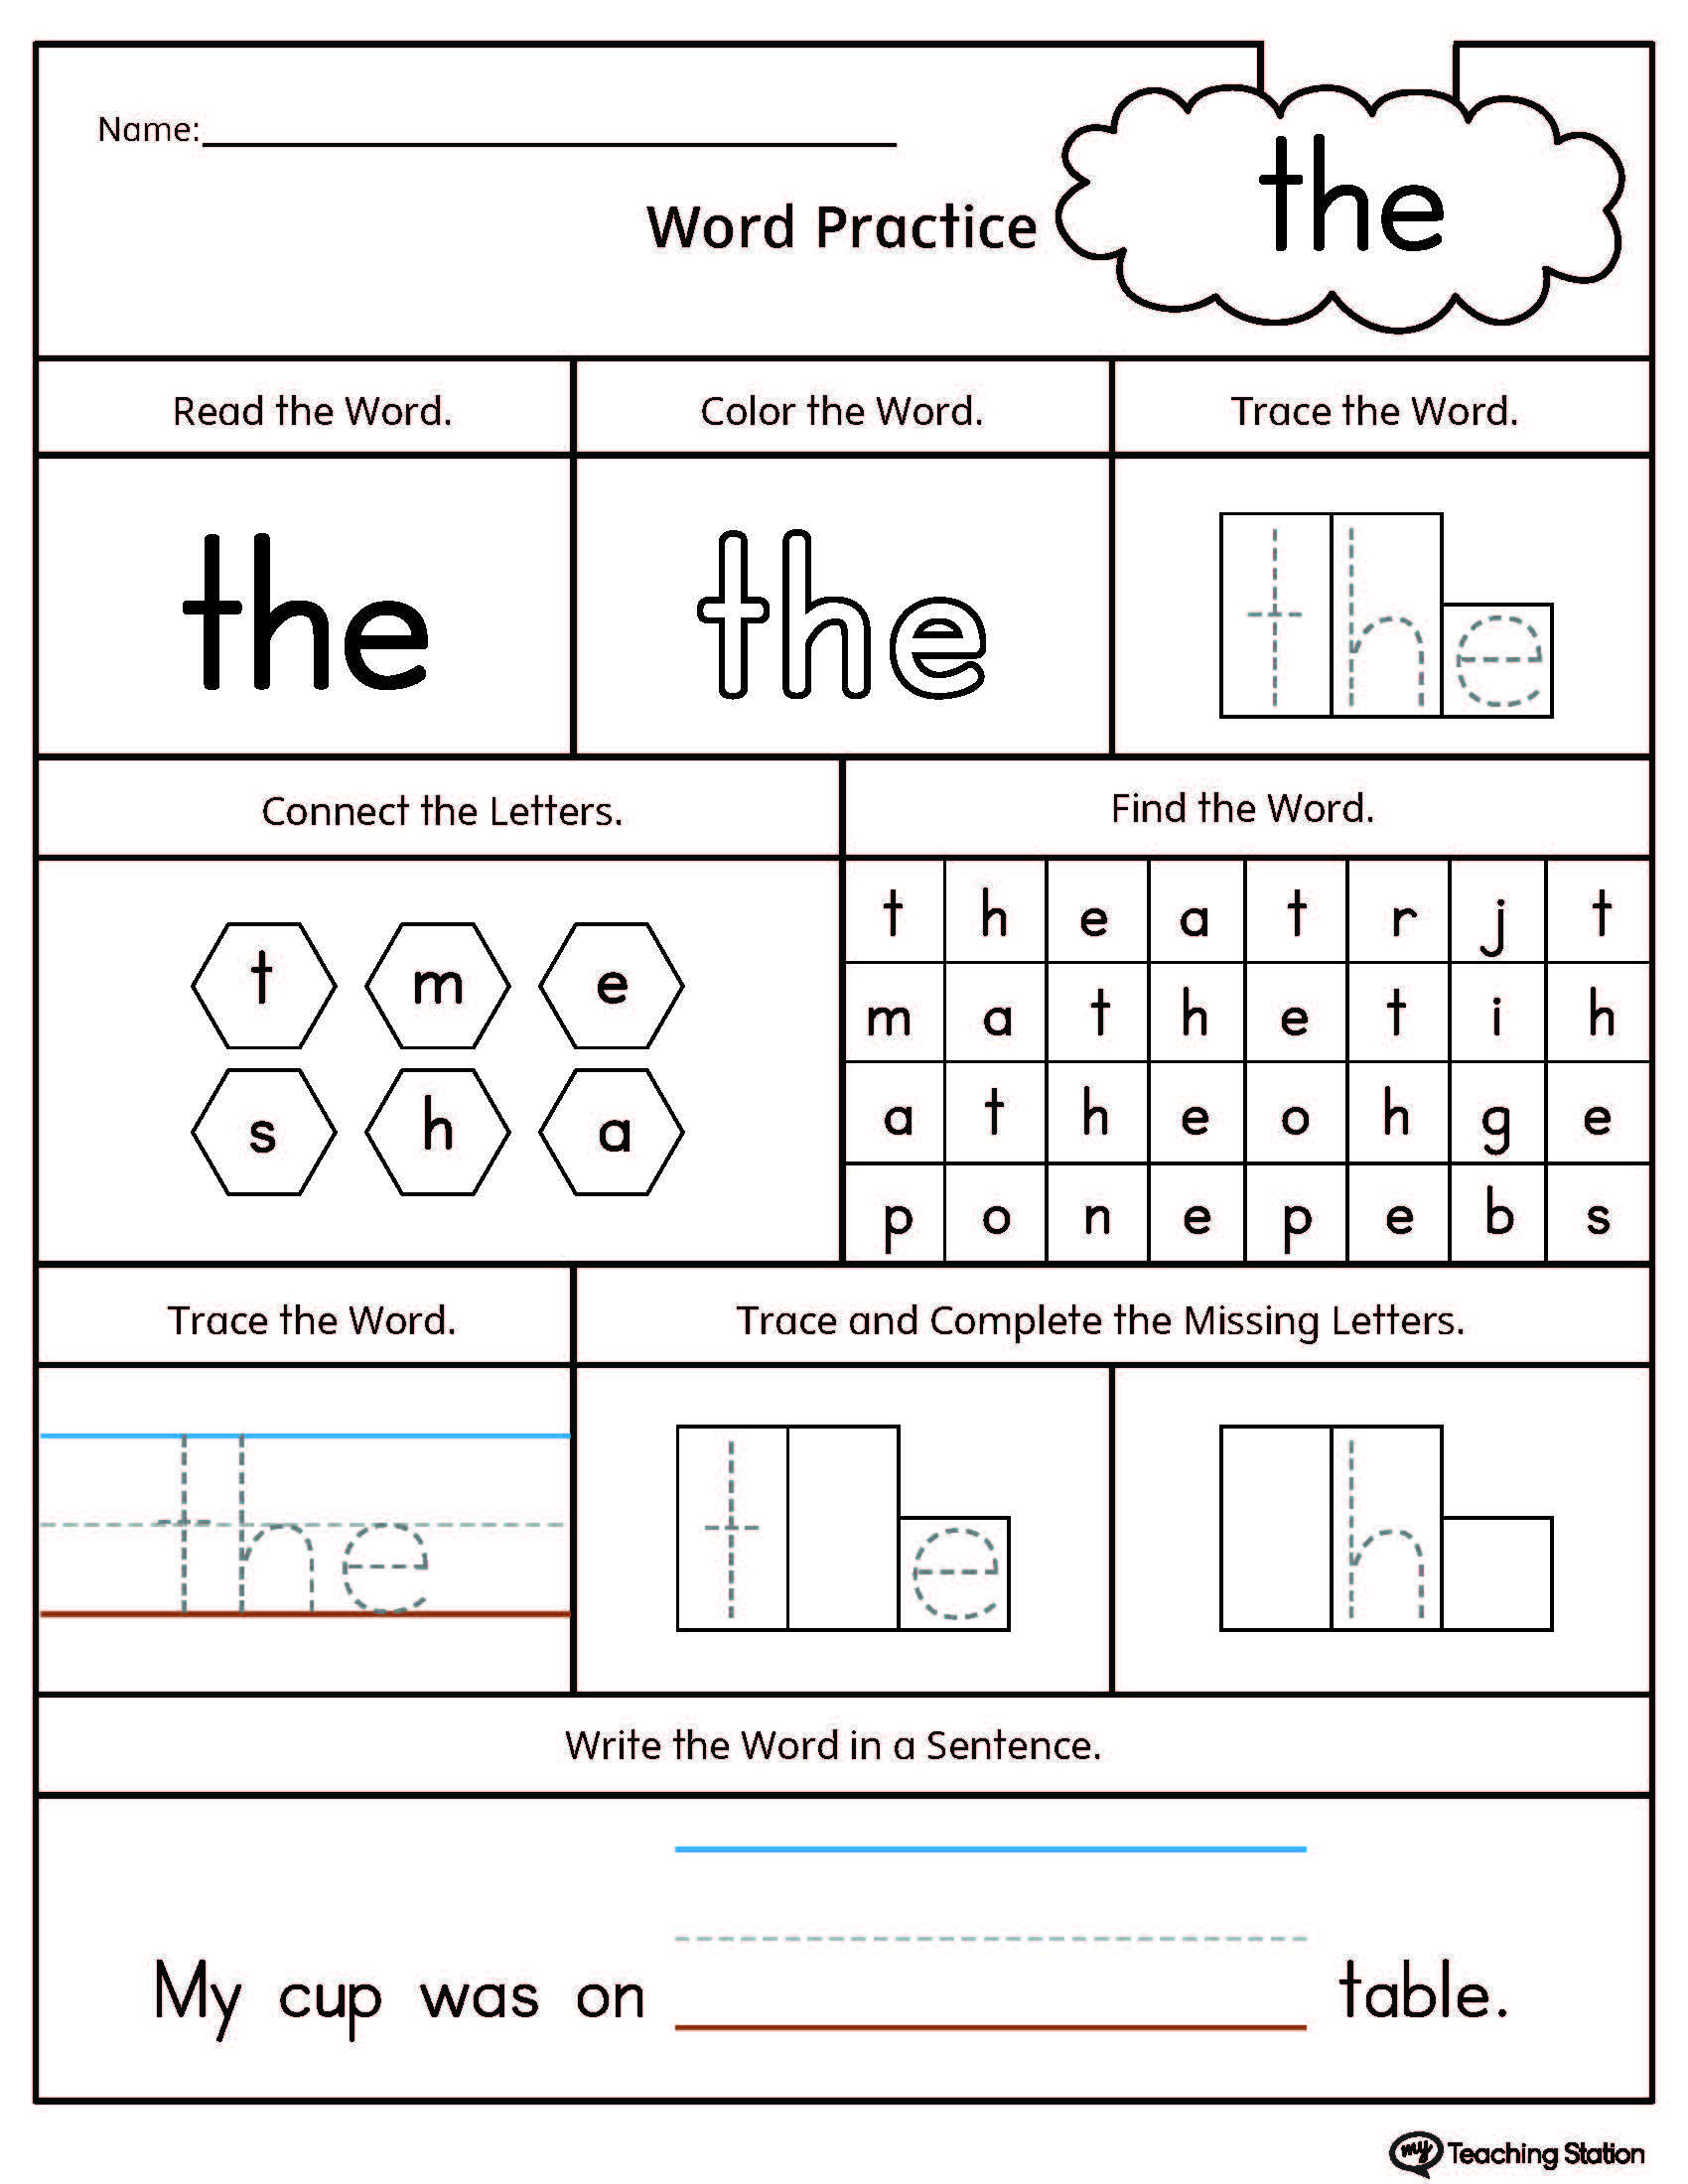 Worksheets Teaching A Child To Read Worksheets sight word the printable worksheet homeschool reading worksheet